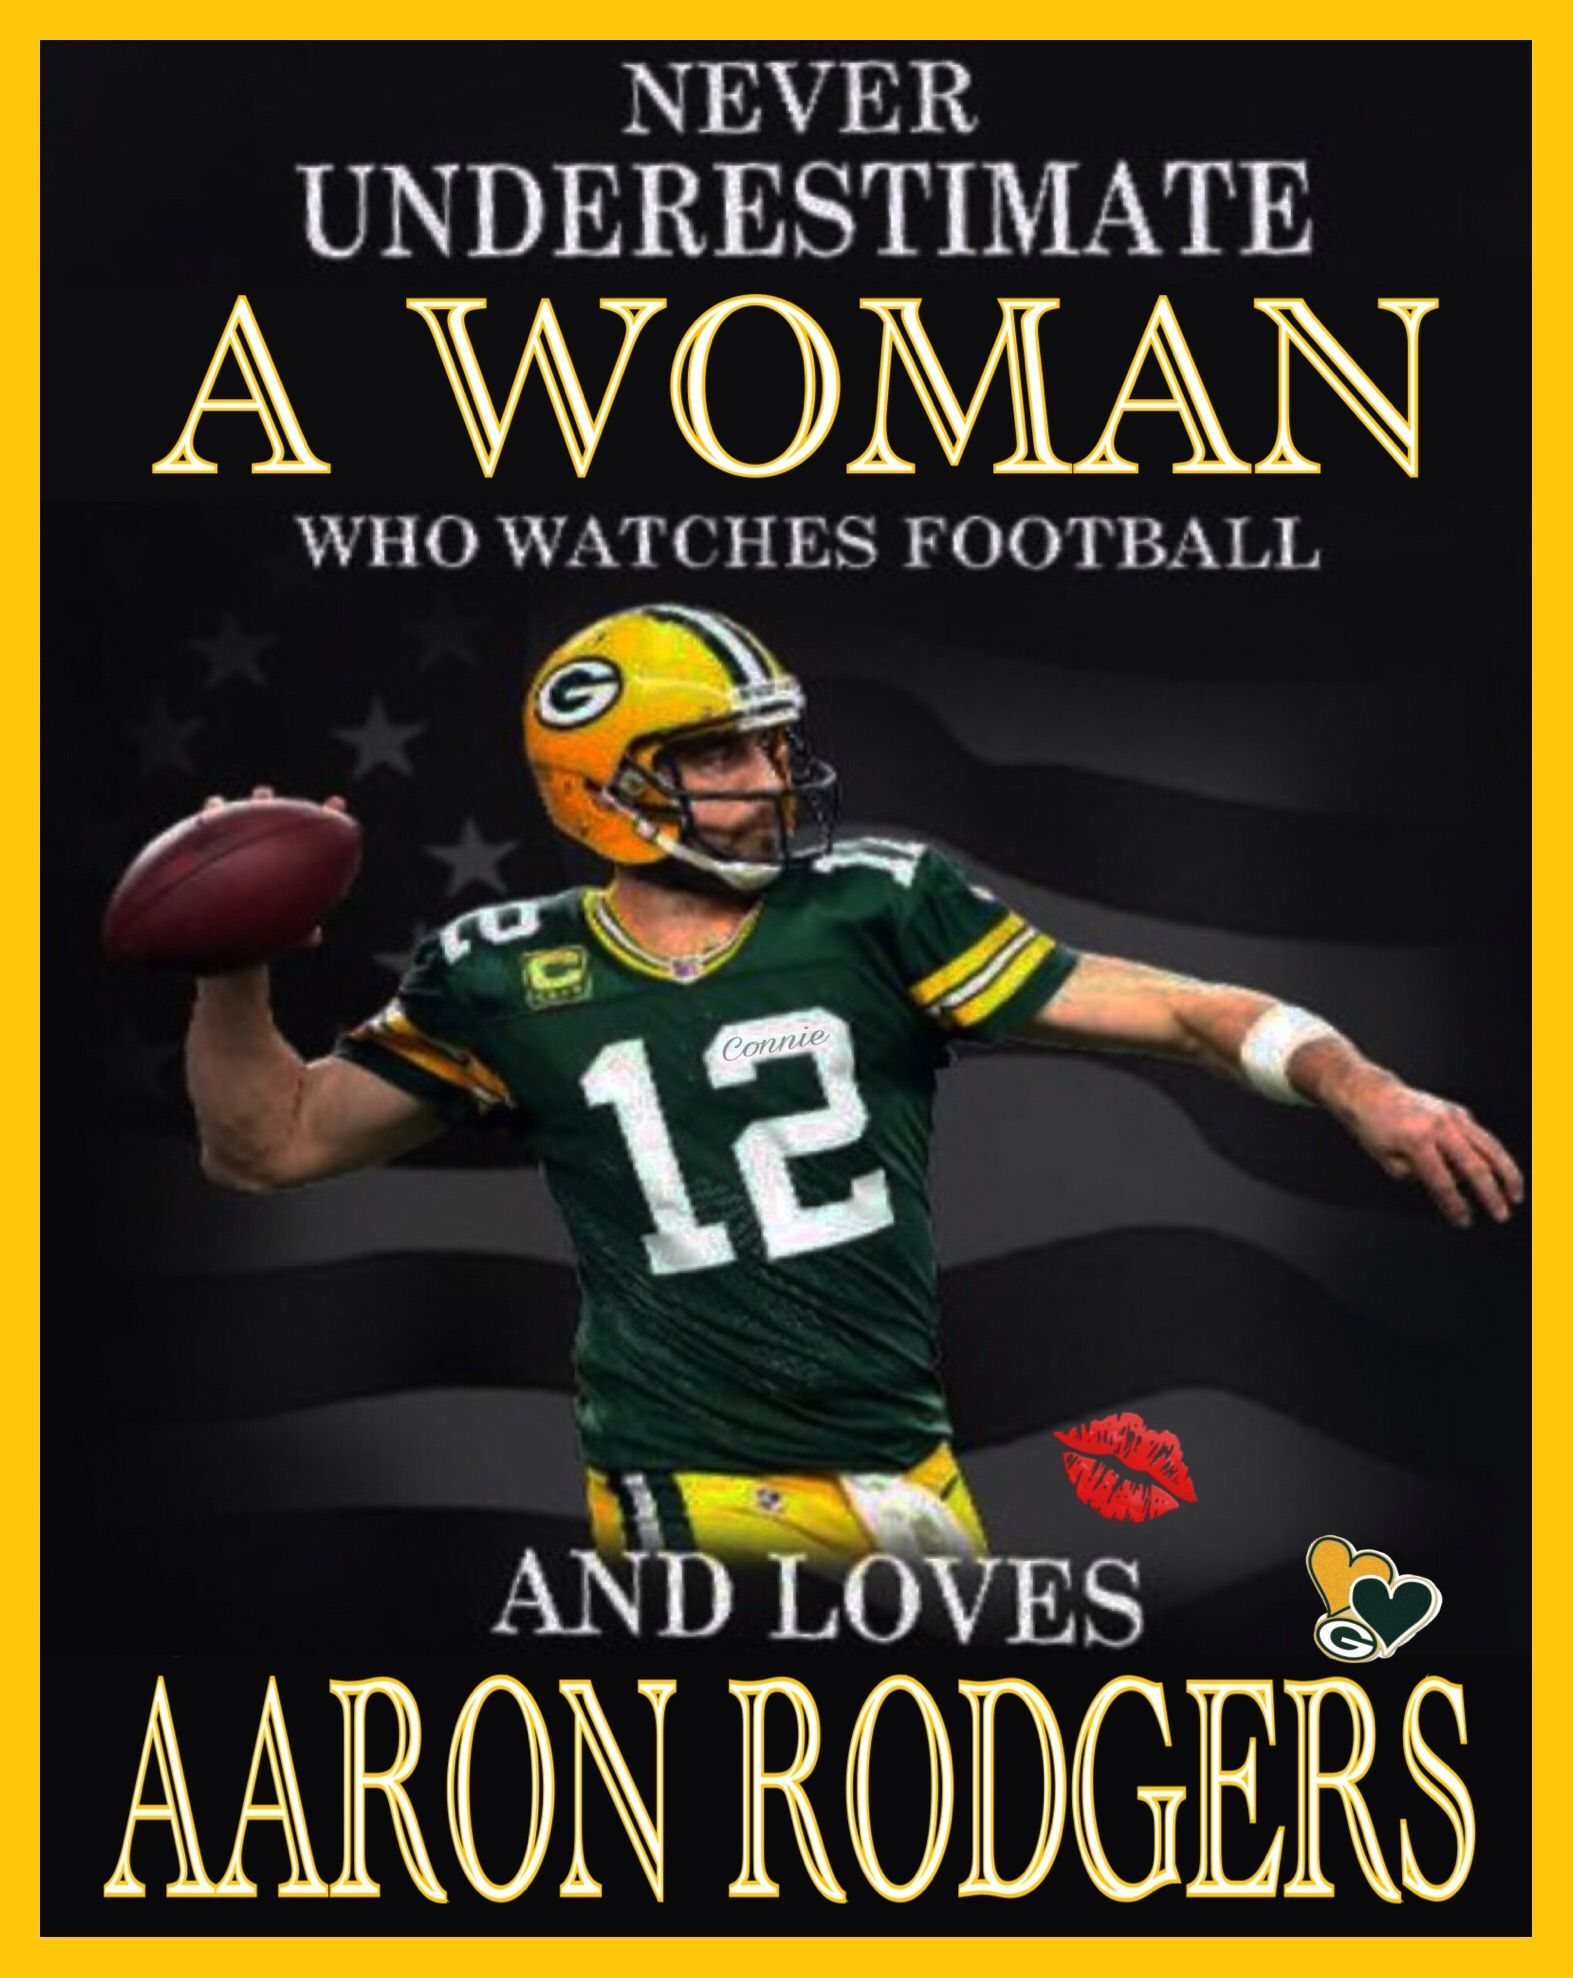 Pin By Julie Wheetley Gann On Green Bay Football In 2020 Green Bay Packers Aaron Rodgers Green Bay Packers Football Green Bay Packers